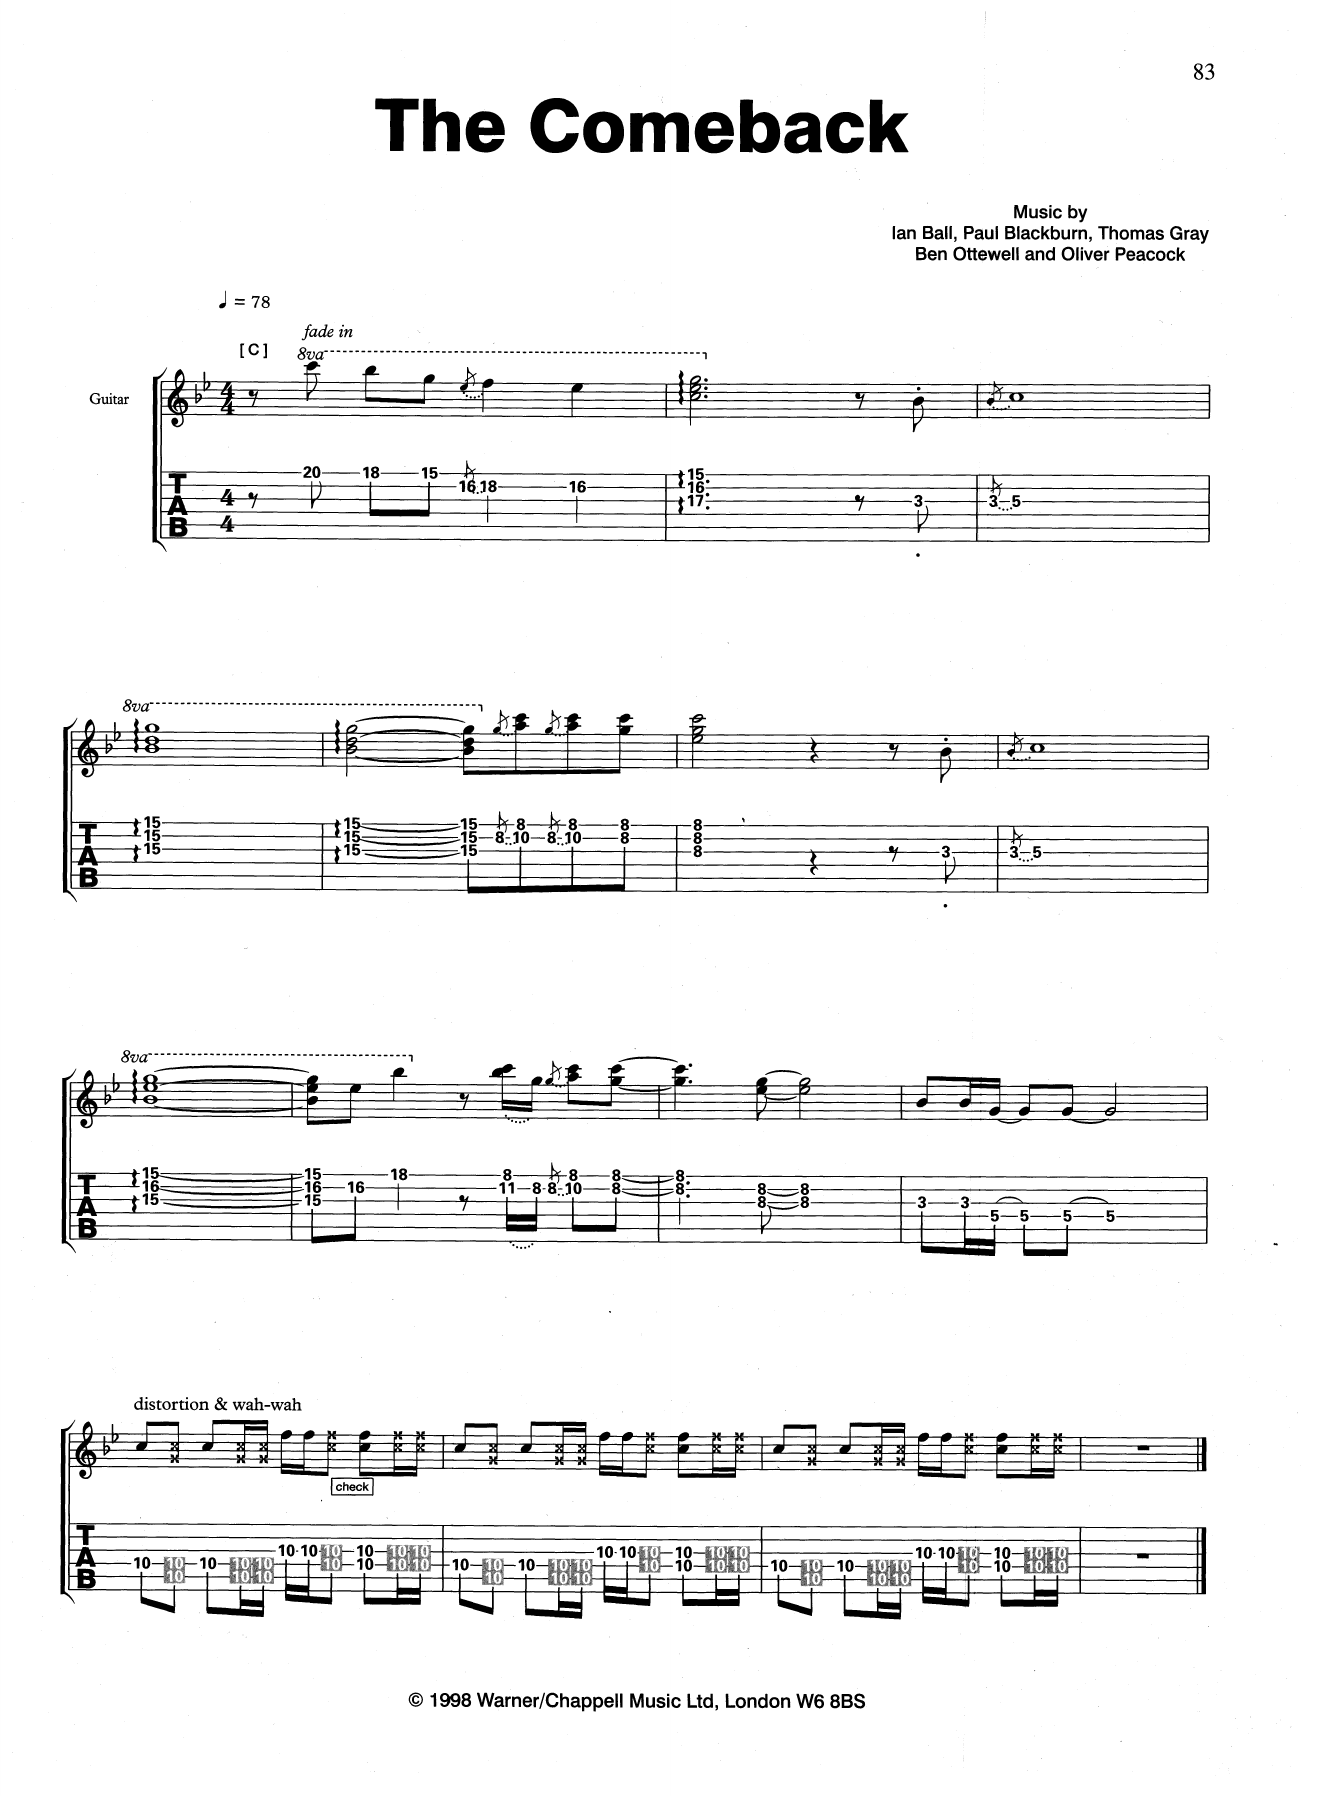 The Comeback Sheet Music